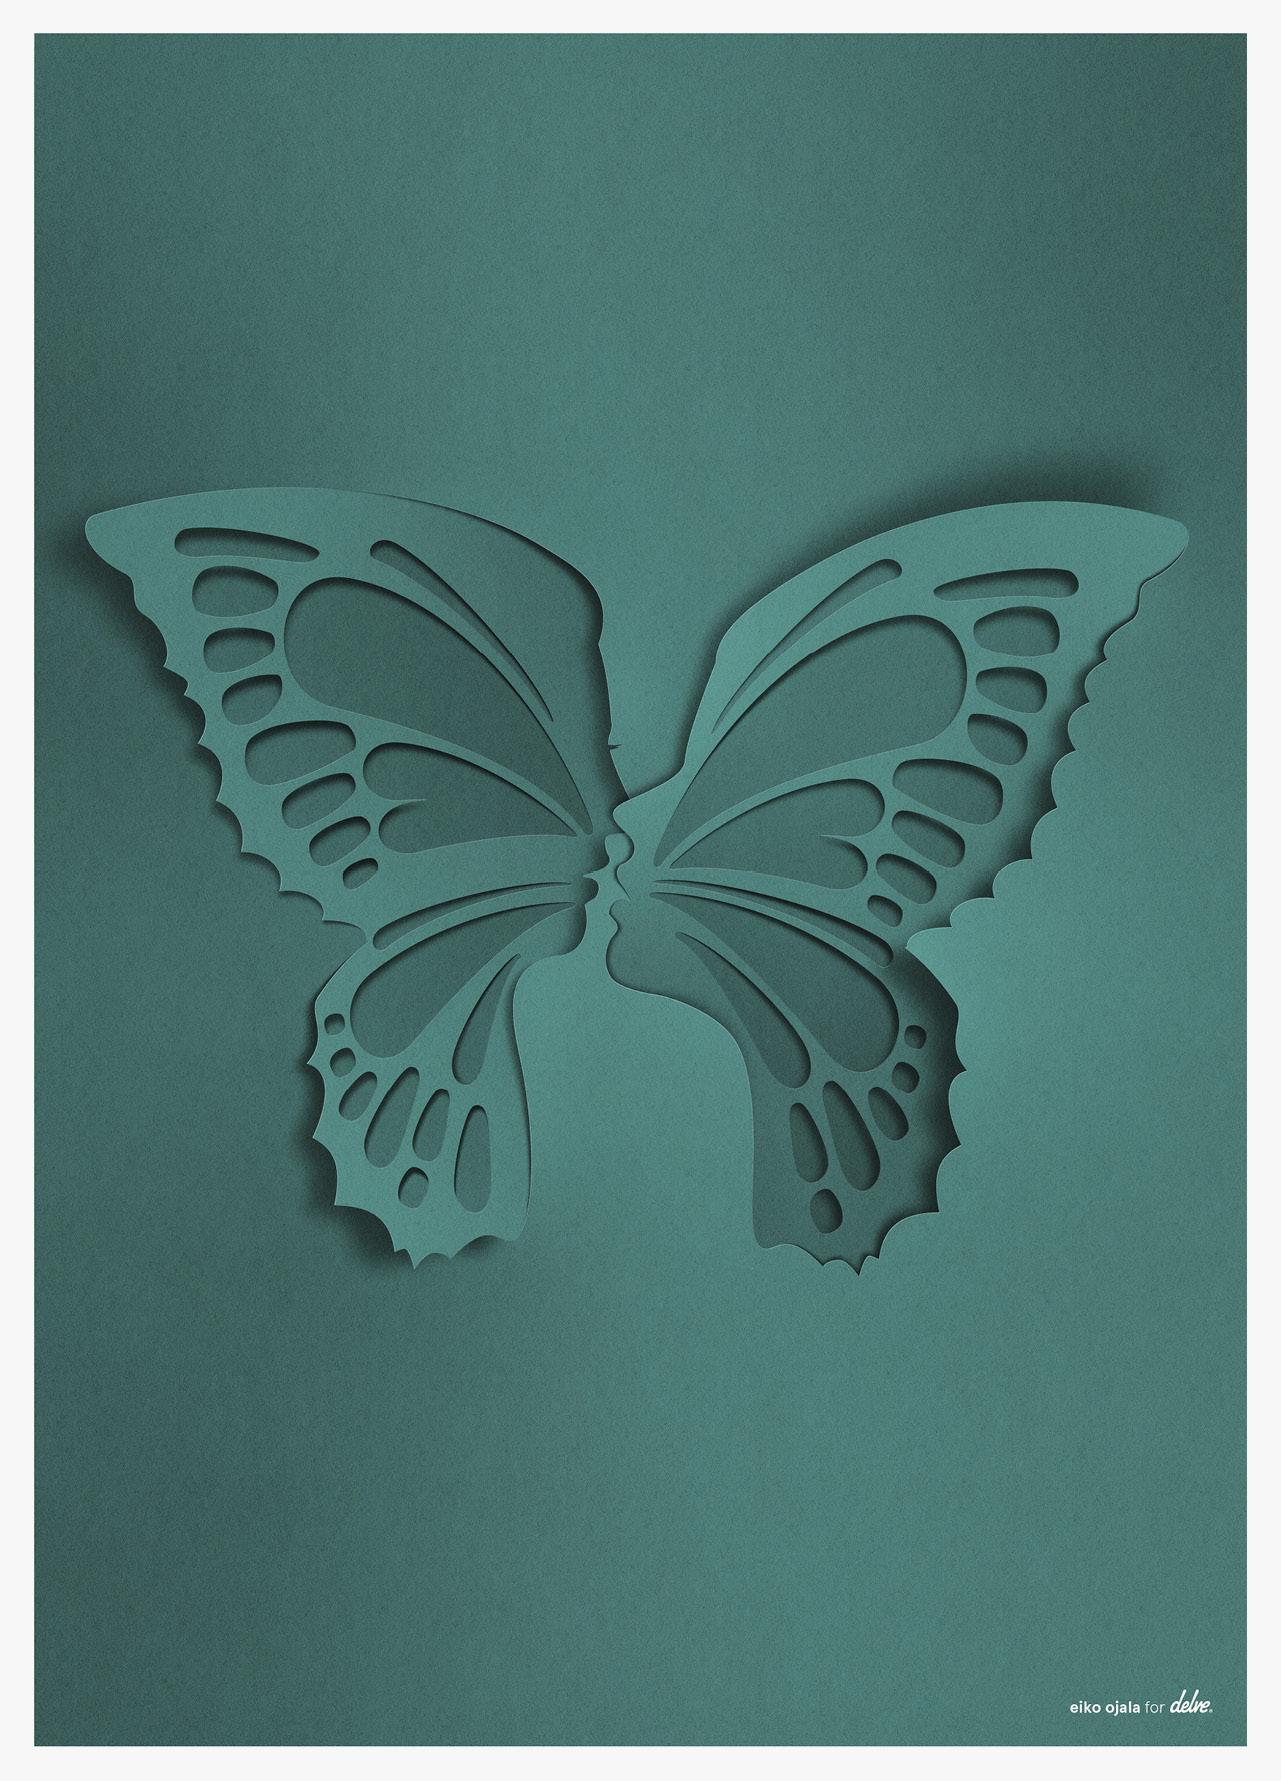 The Duke of Burgundy by Eiko Ojala